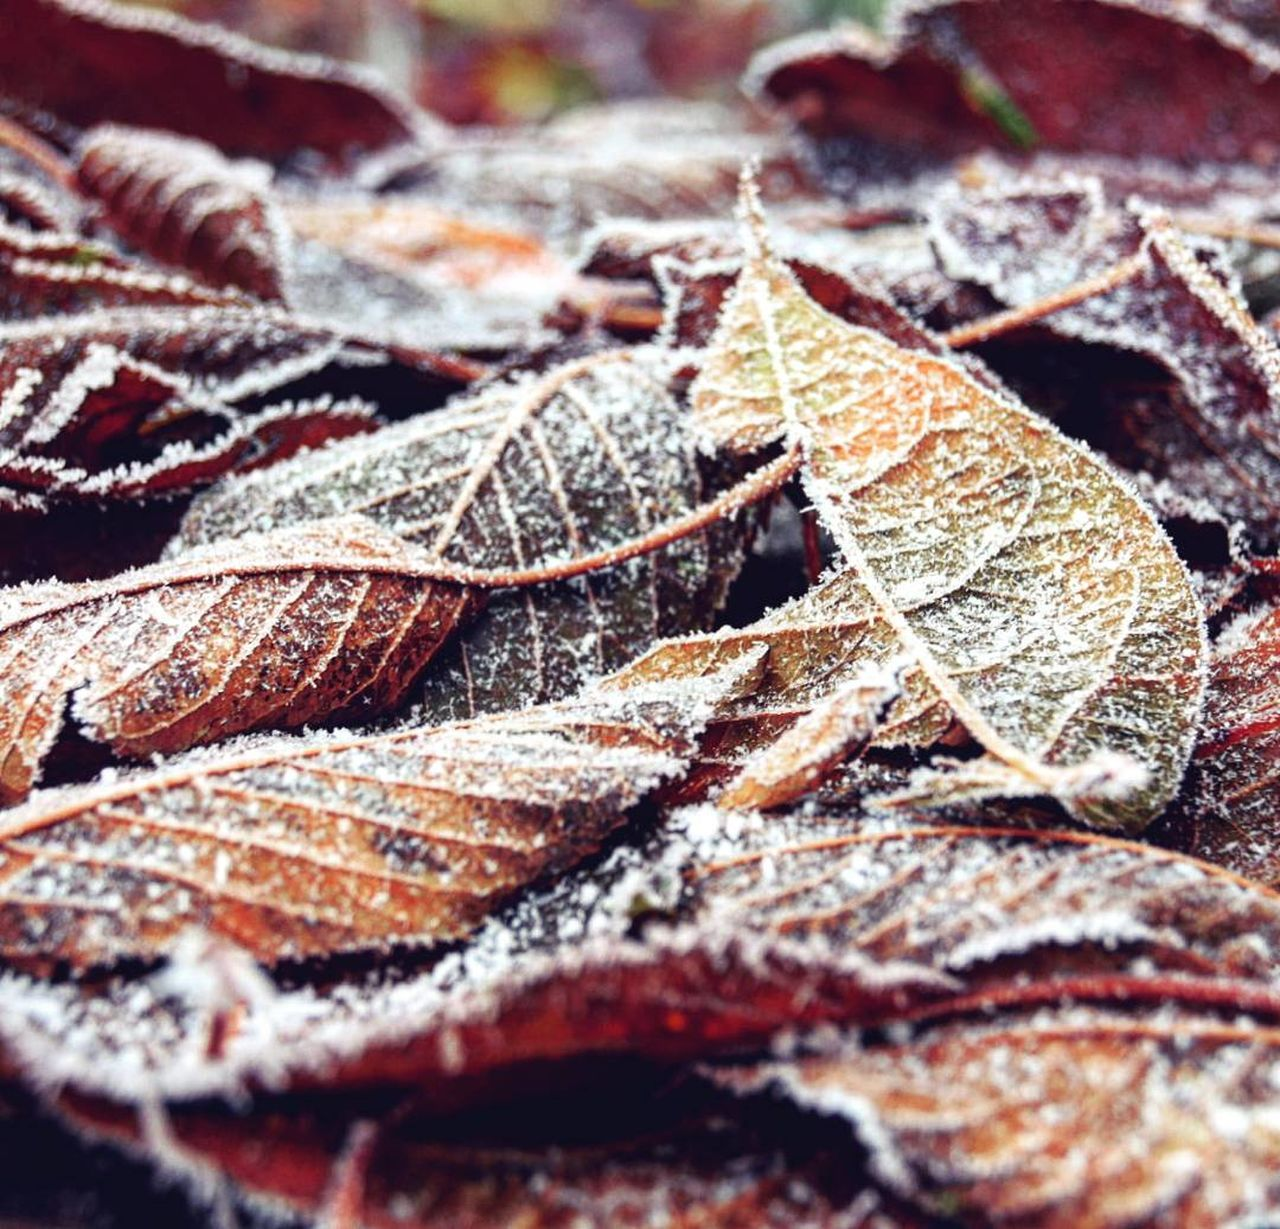 Leafes Beauty In Nature Winter Nature Day Outdoors Itscold Garden